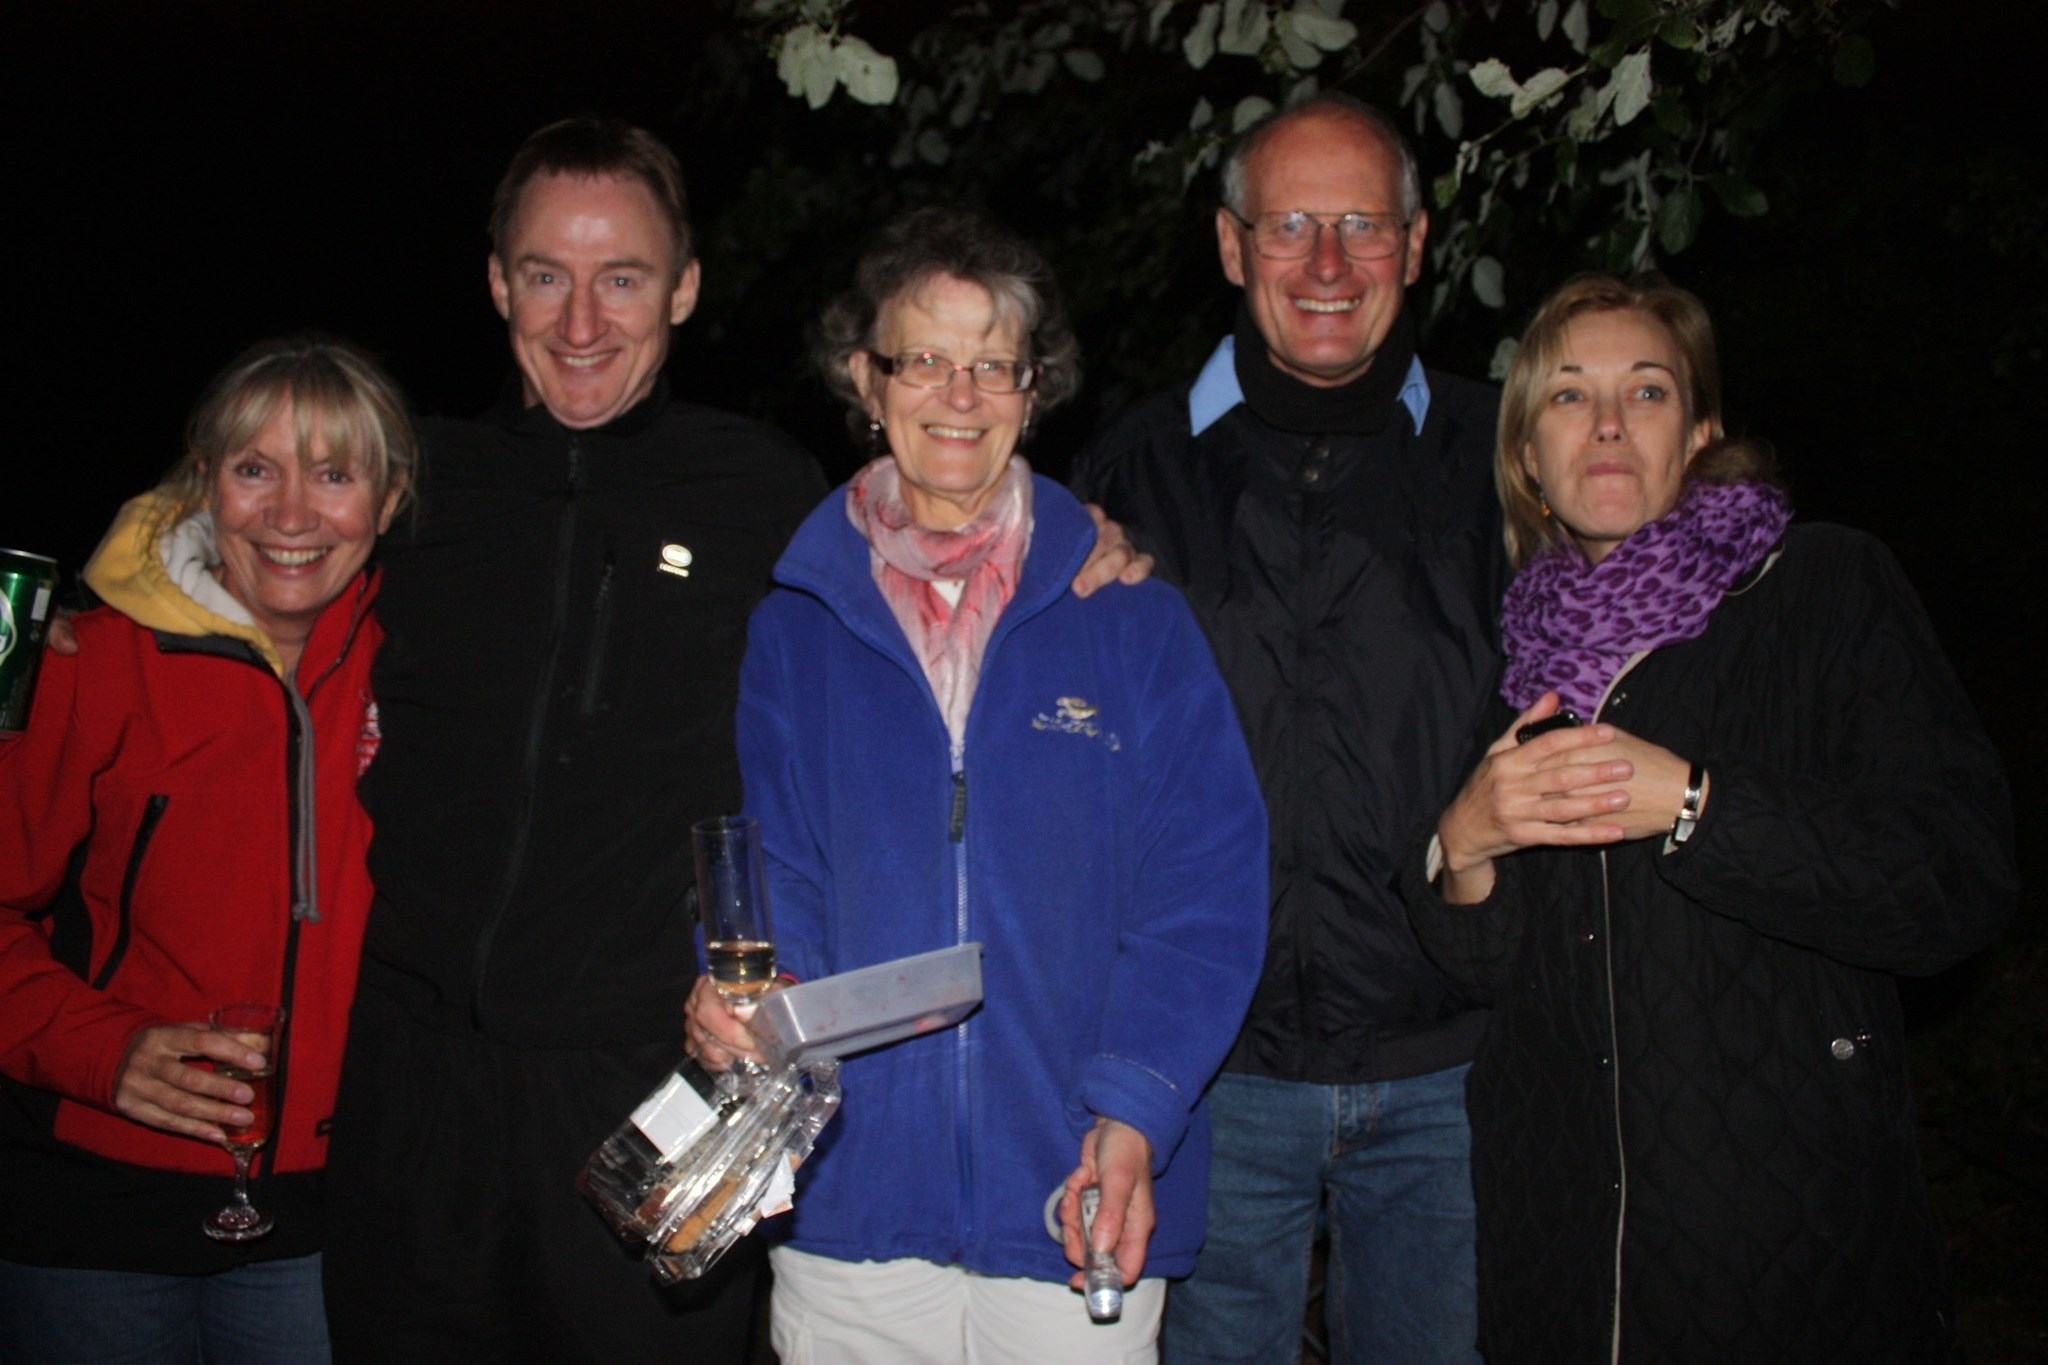 """Up the Hill"" for the longest day 2011"